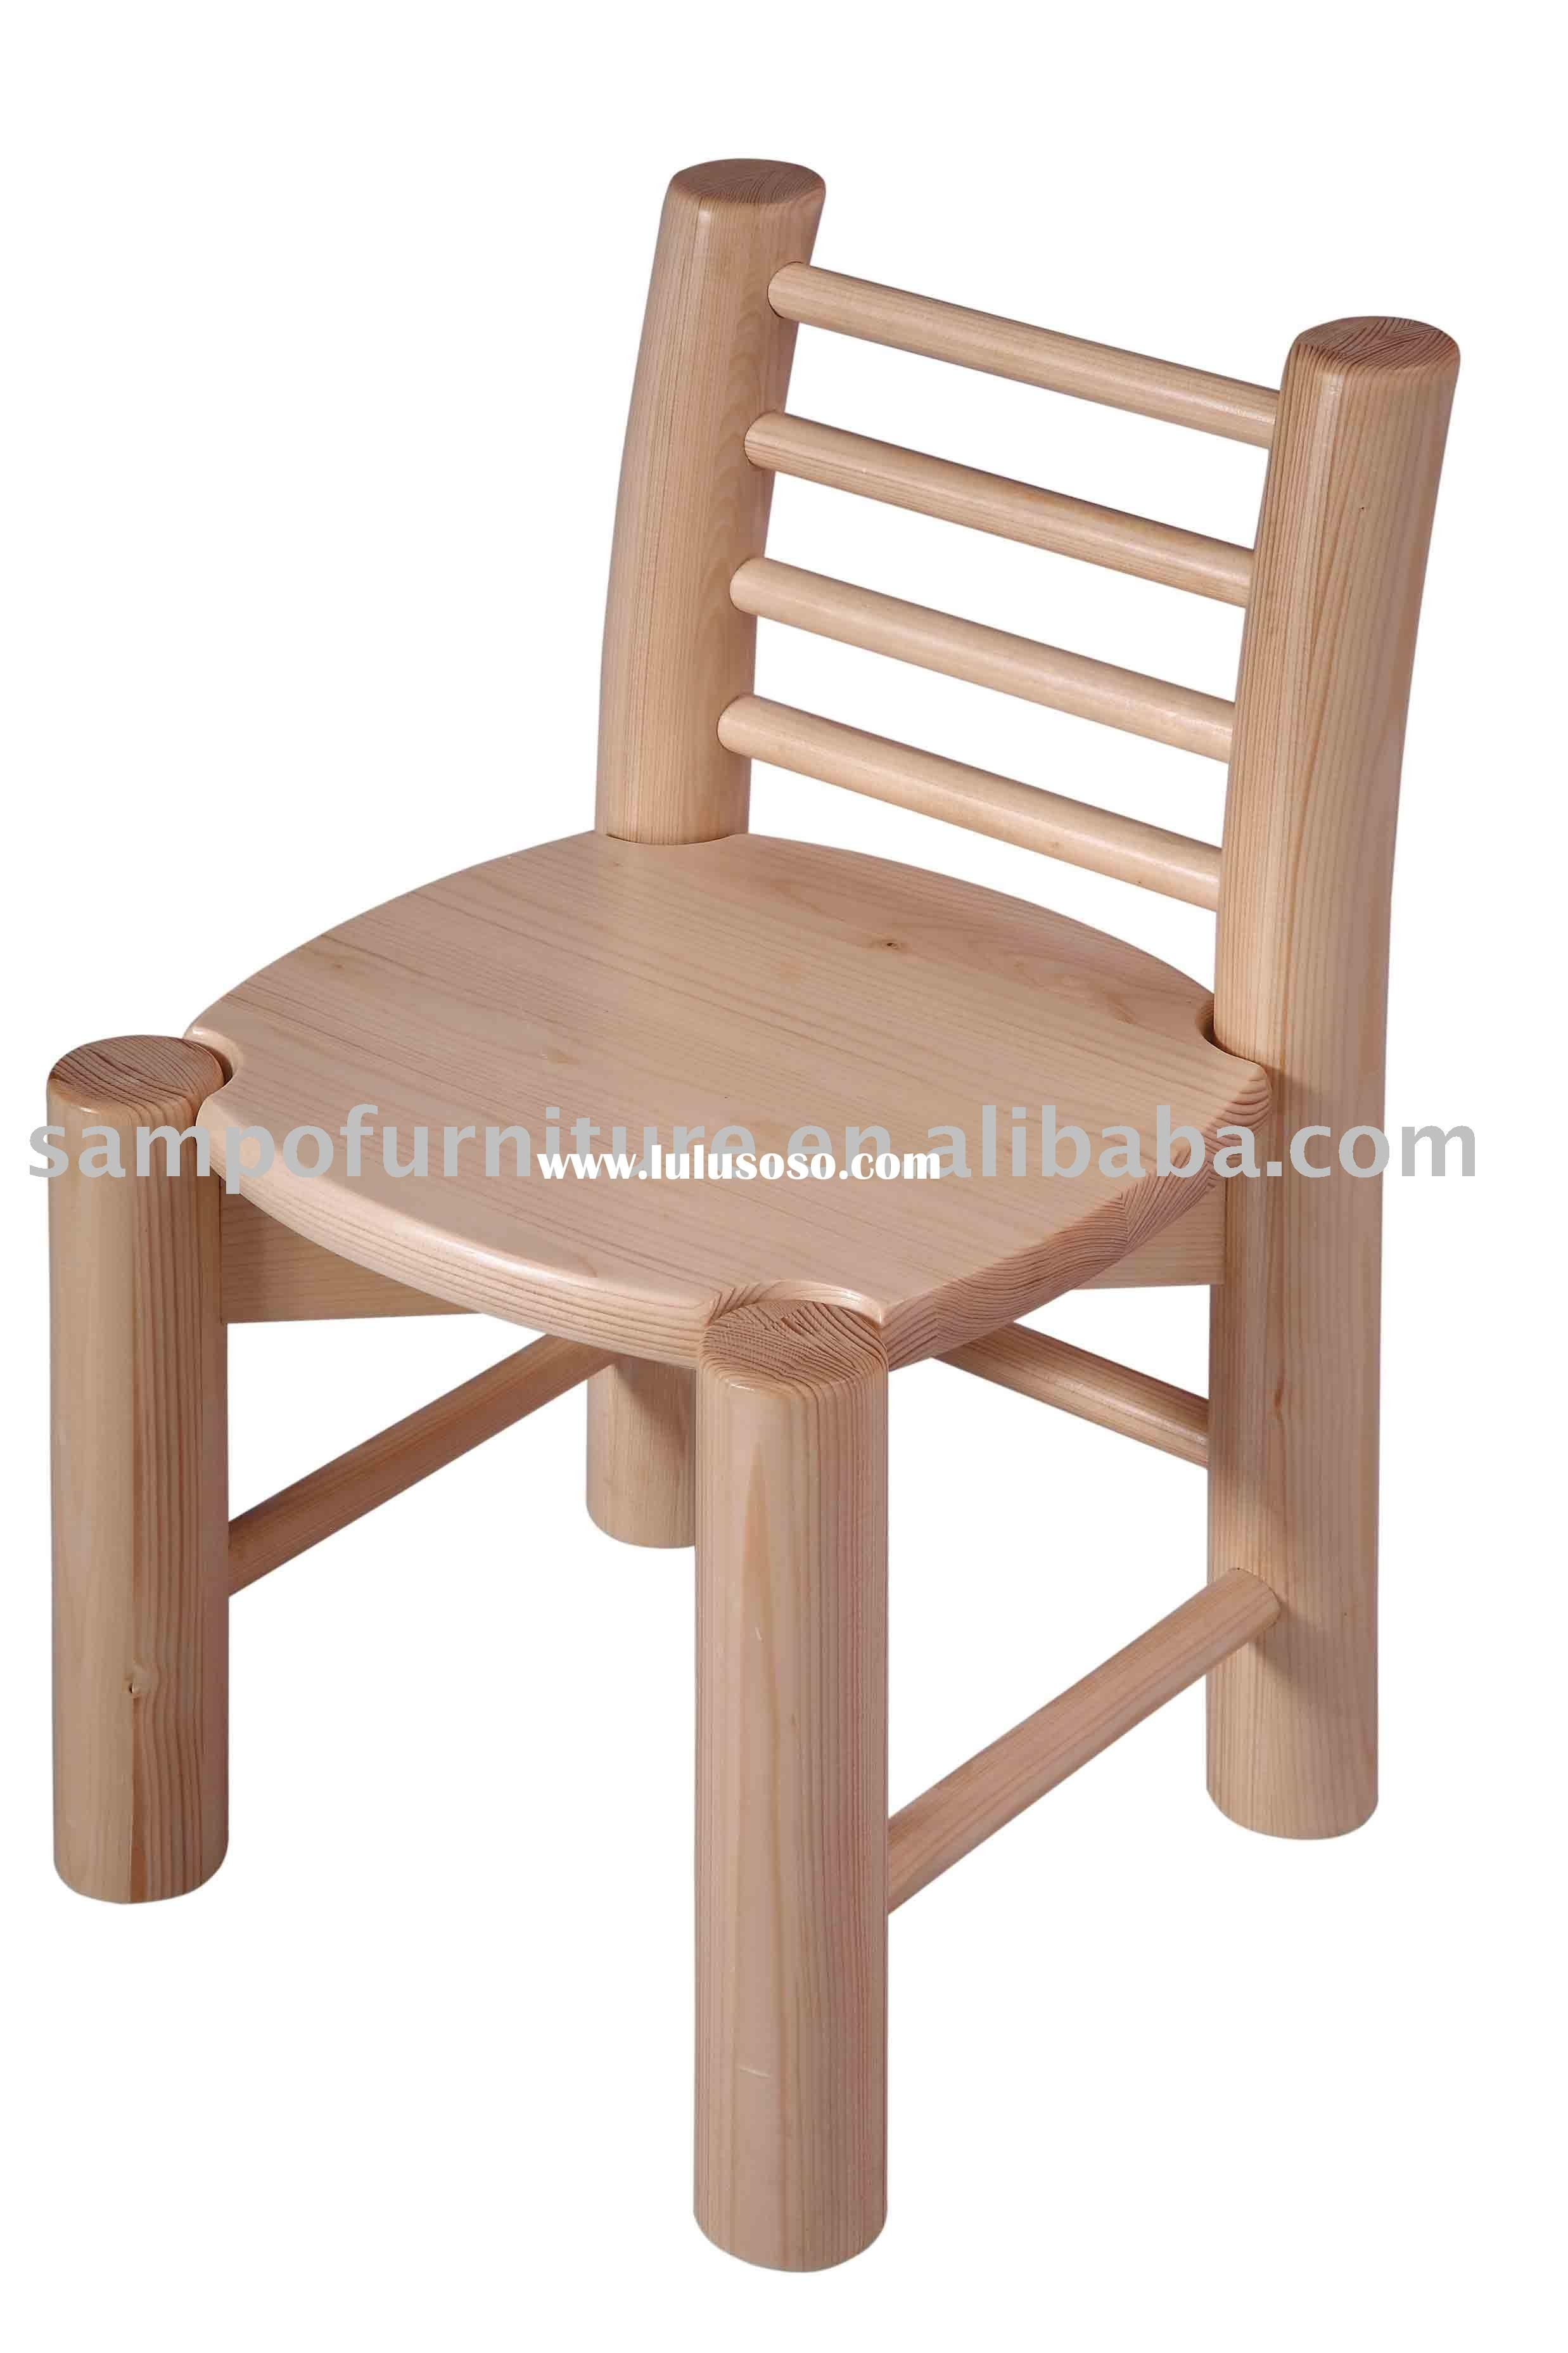 chairs children s wooden stackable chairs Google Search